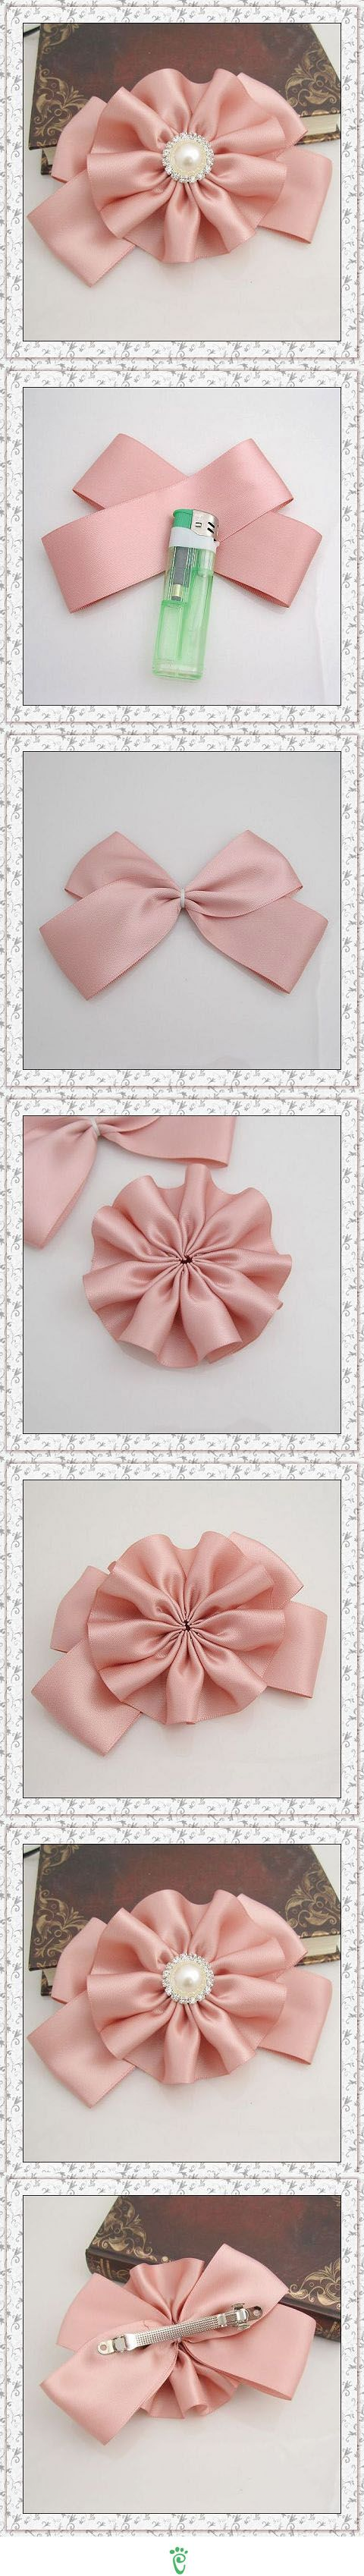 could be used as brooch or gift topping too